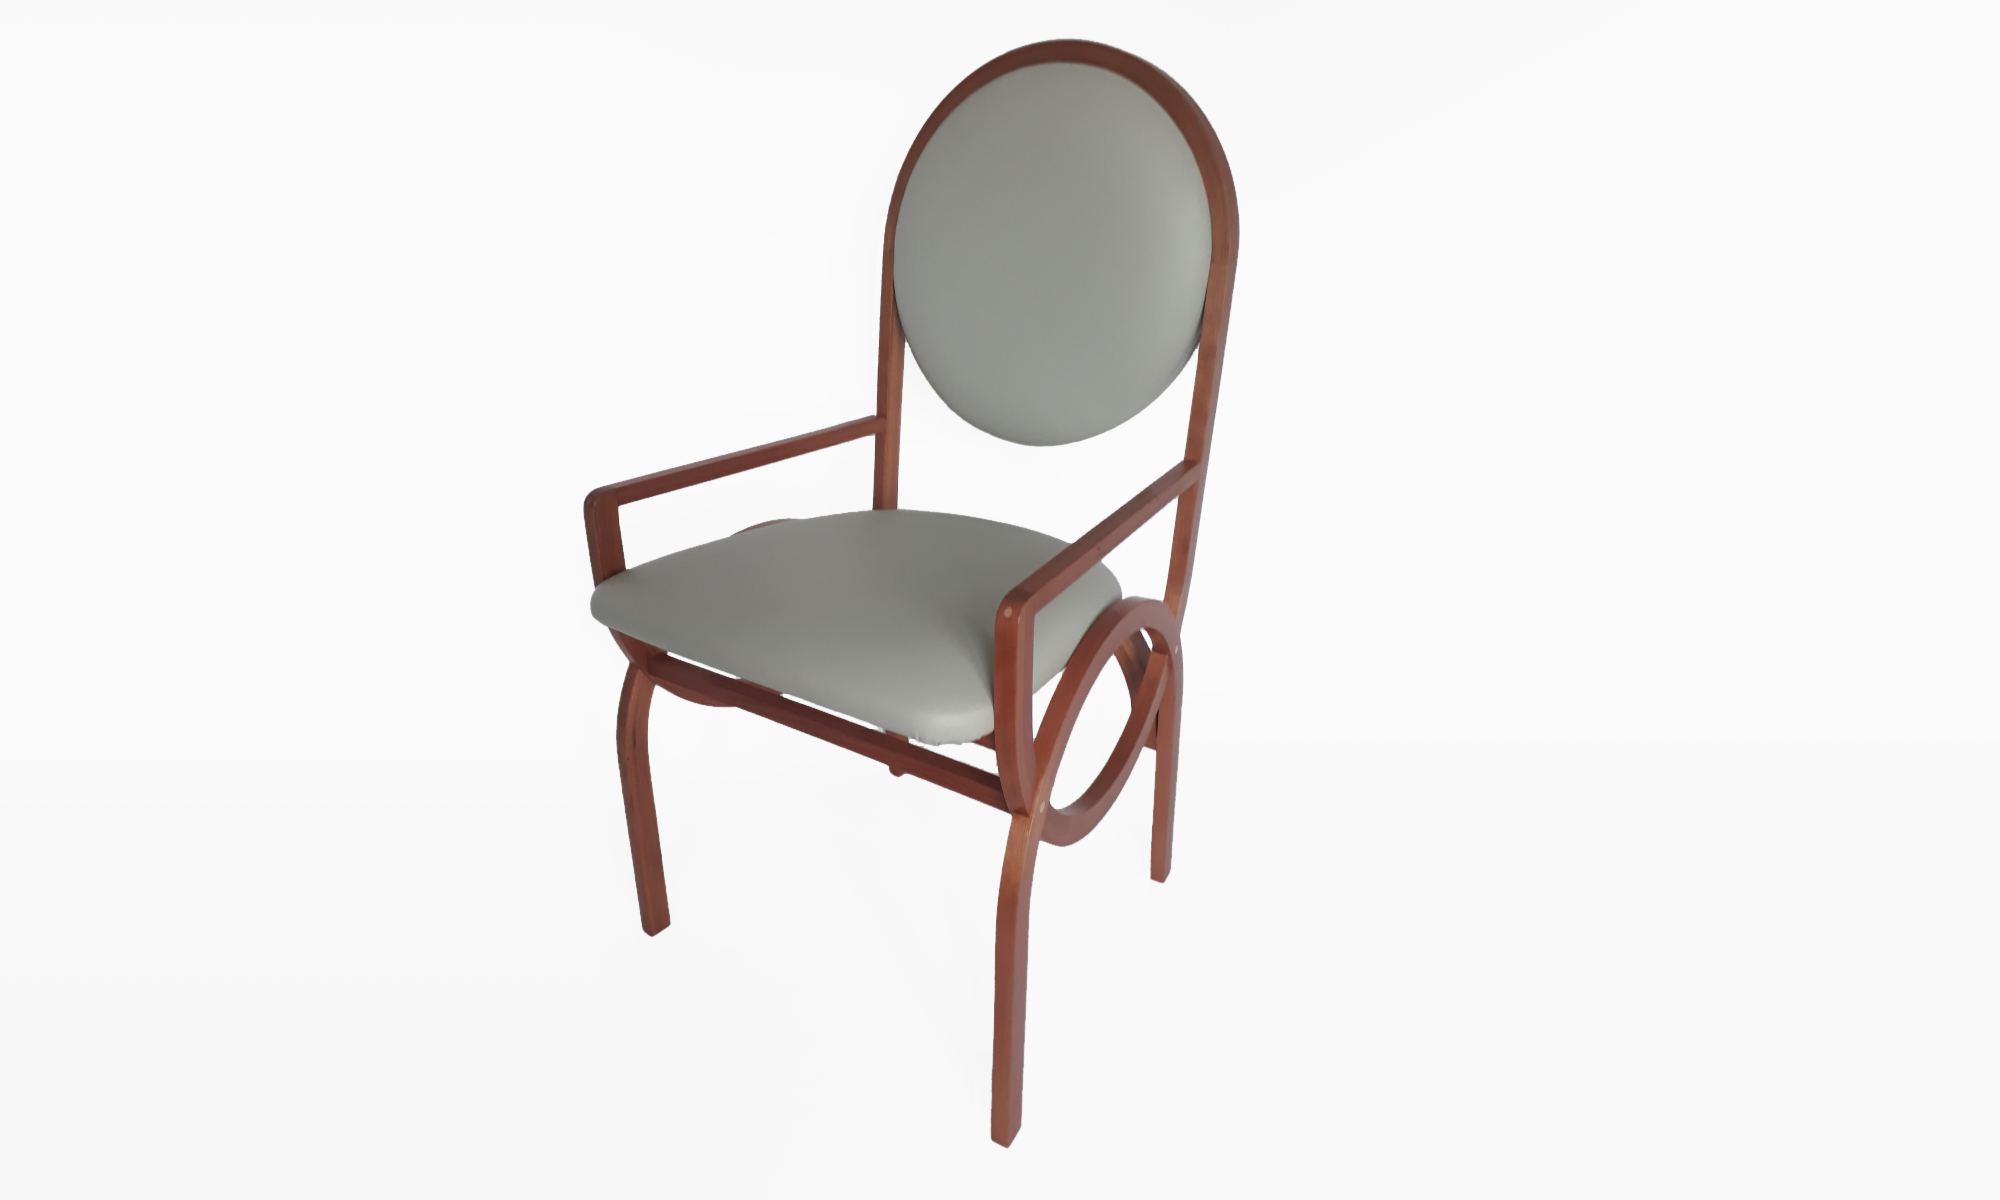 image of bespoke handcrafted rondeur chair furniture